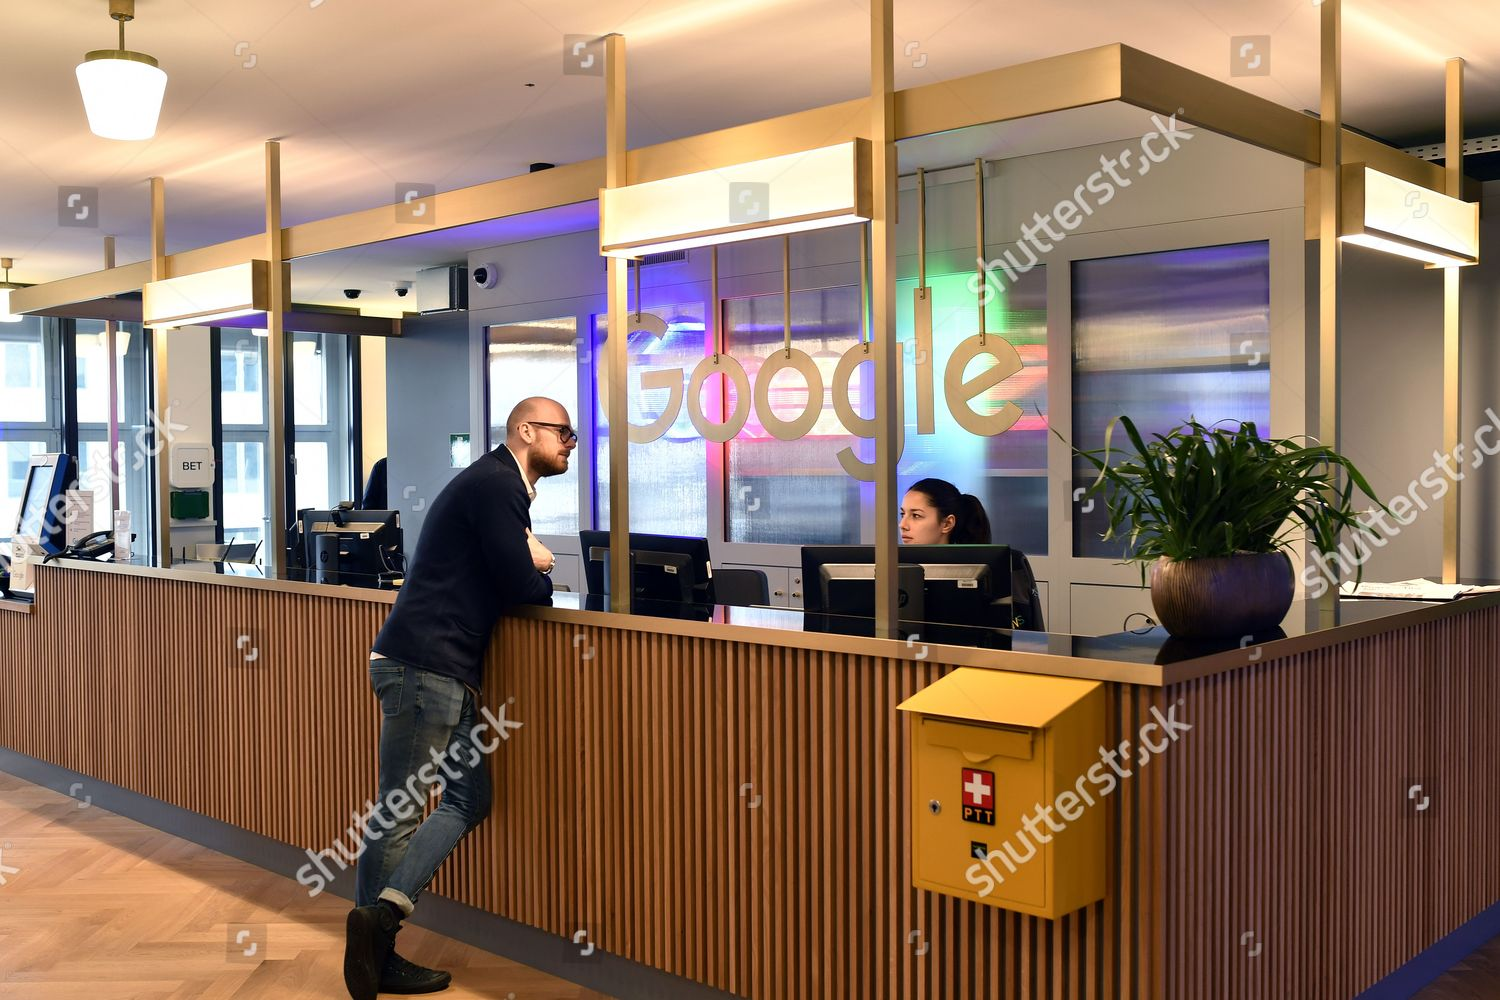 Google office switzerland Home Office Newly Open Google Offices In Zurich Zuerich Switzerland 17 Jan 2017 Shutterstock View Newly Opened Google Office Sihlpost Building Editorial Stock